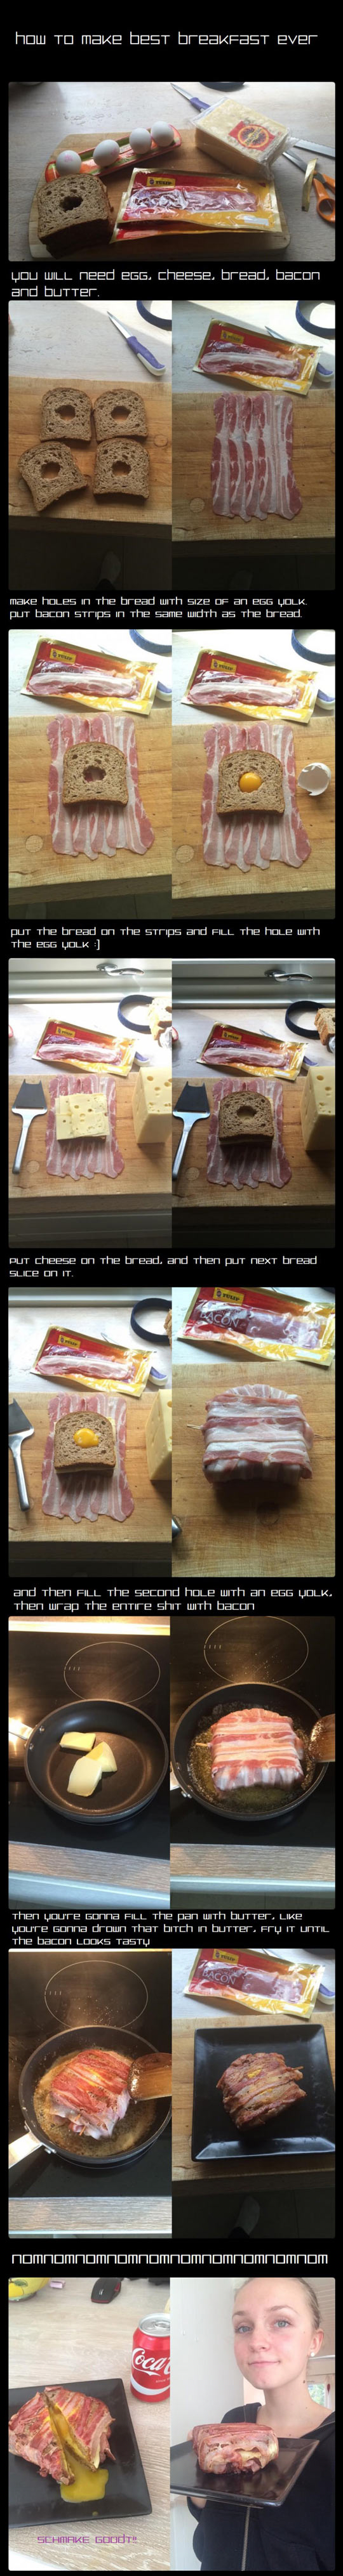 cool-breakfast-idea-bacon